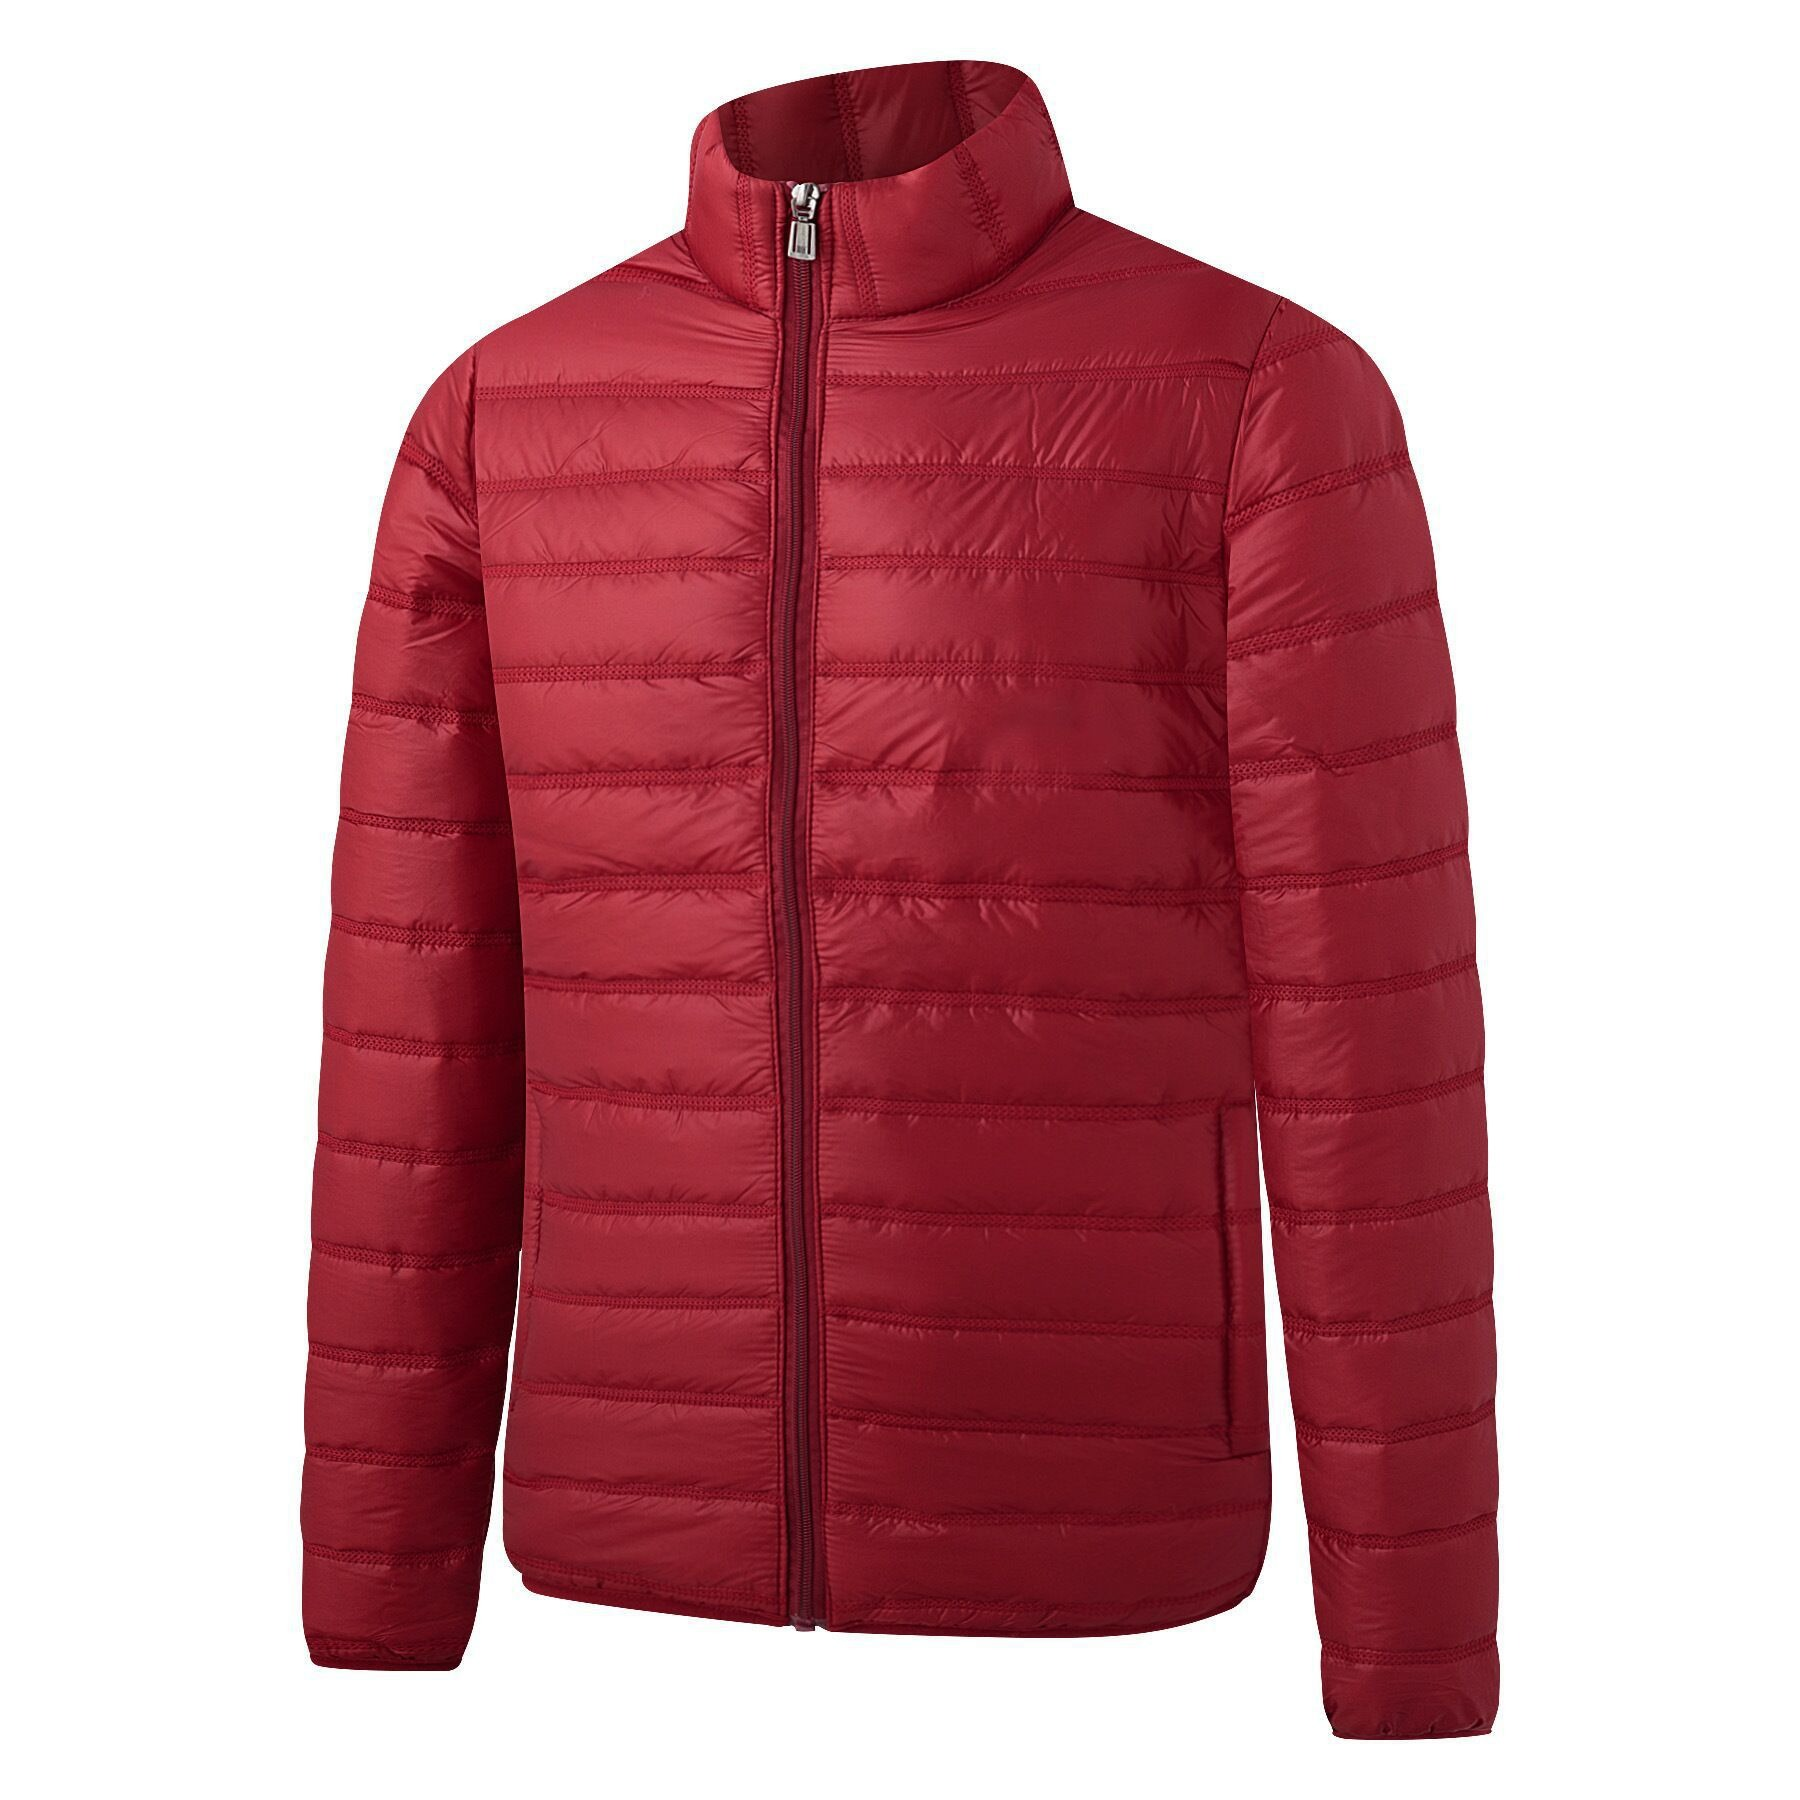 down cotton padded jacket casual all match fashion mens stand up collar thick solid color autumn large size 1139 - PewDiePie Merch